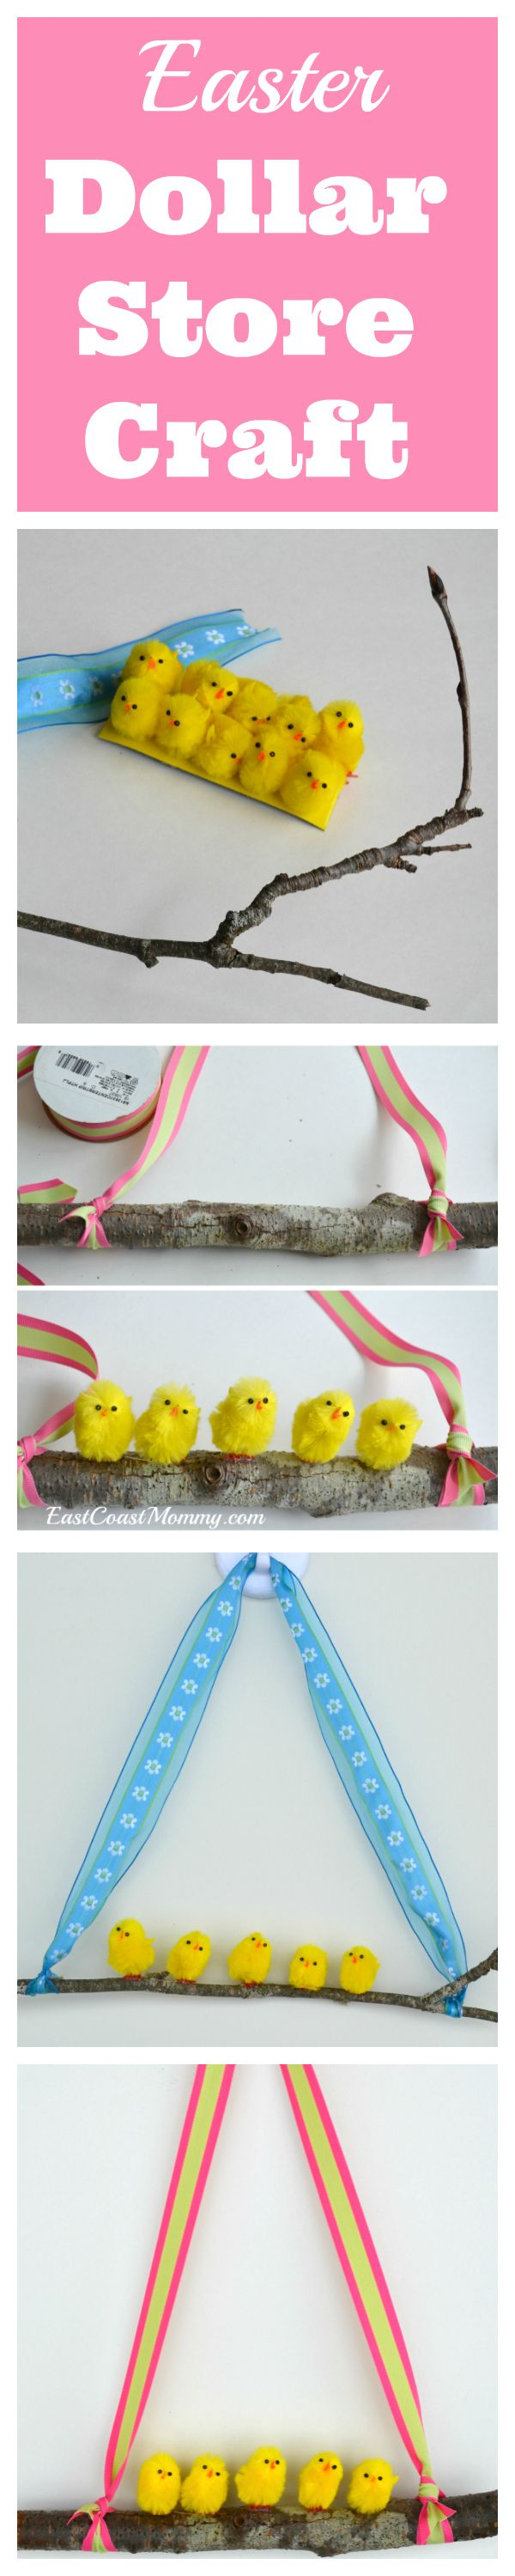 This website has wonderful ideas for easy and inexpensive Easter decor, crafts, and food.